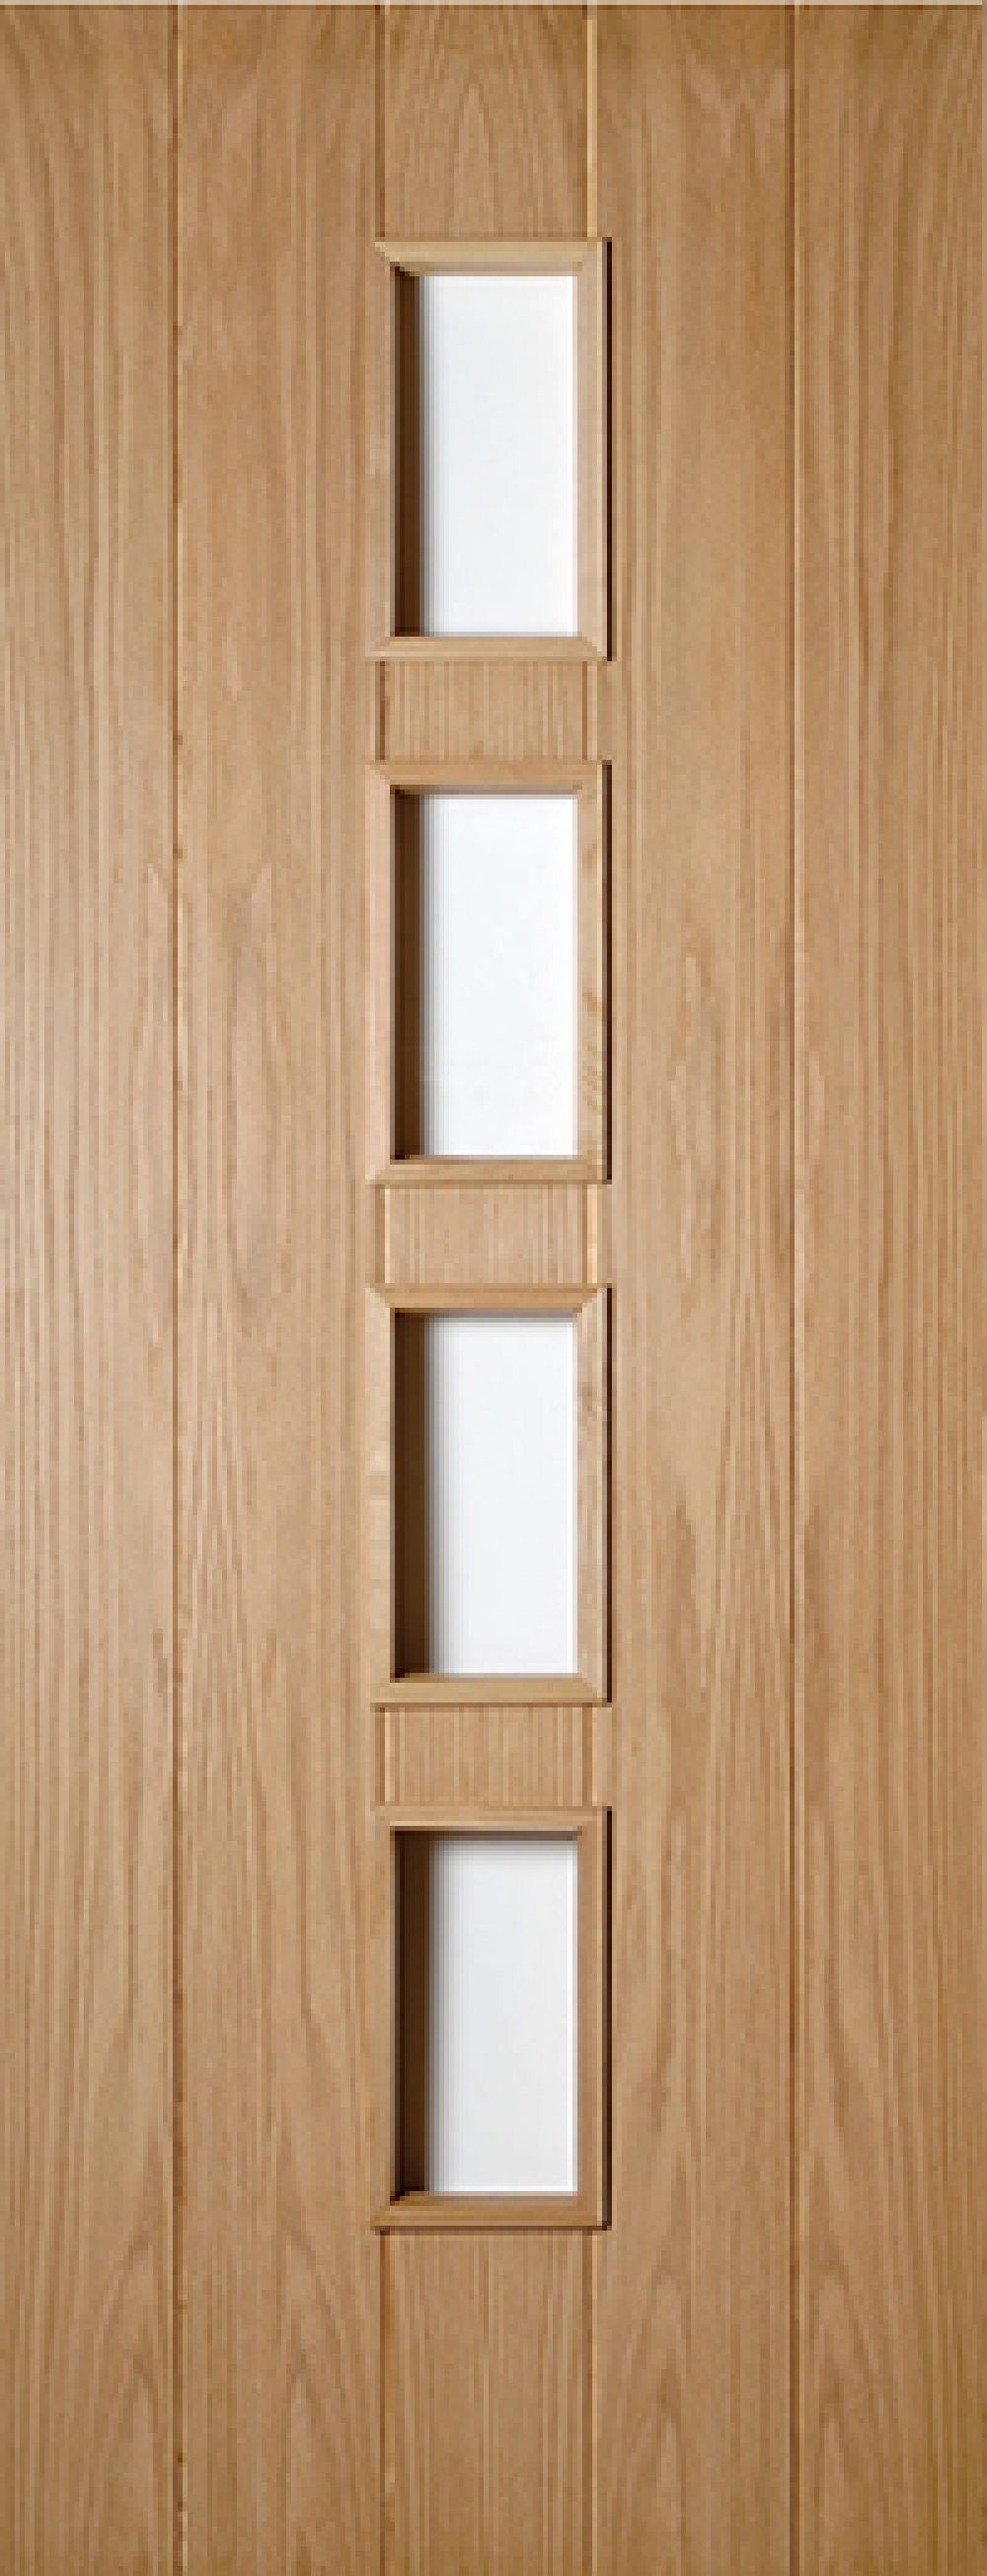 Galway Oak Door - Unglazed